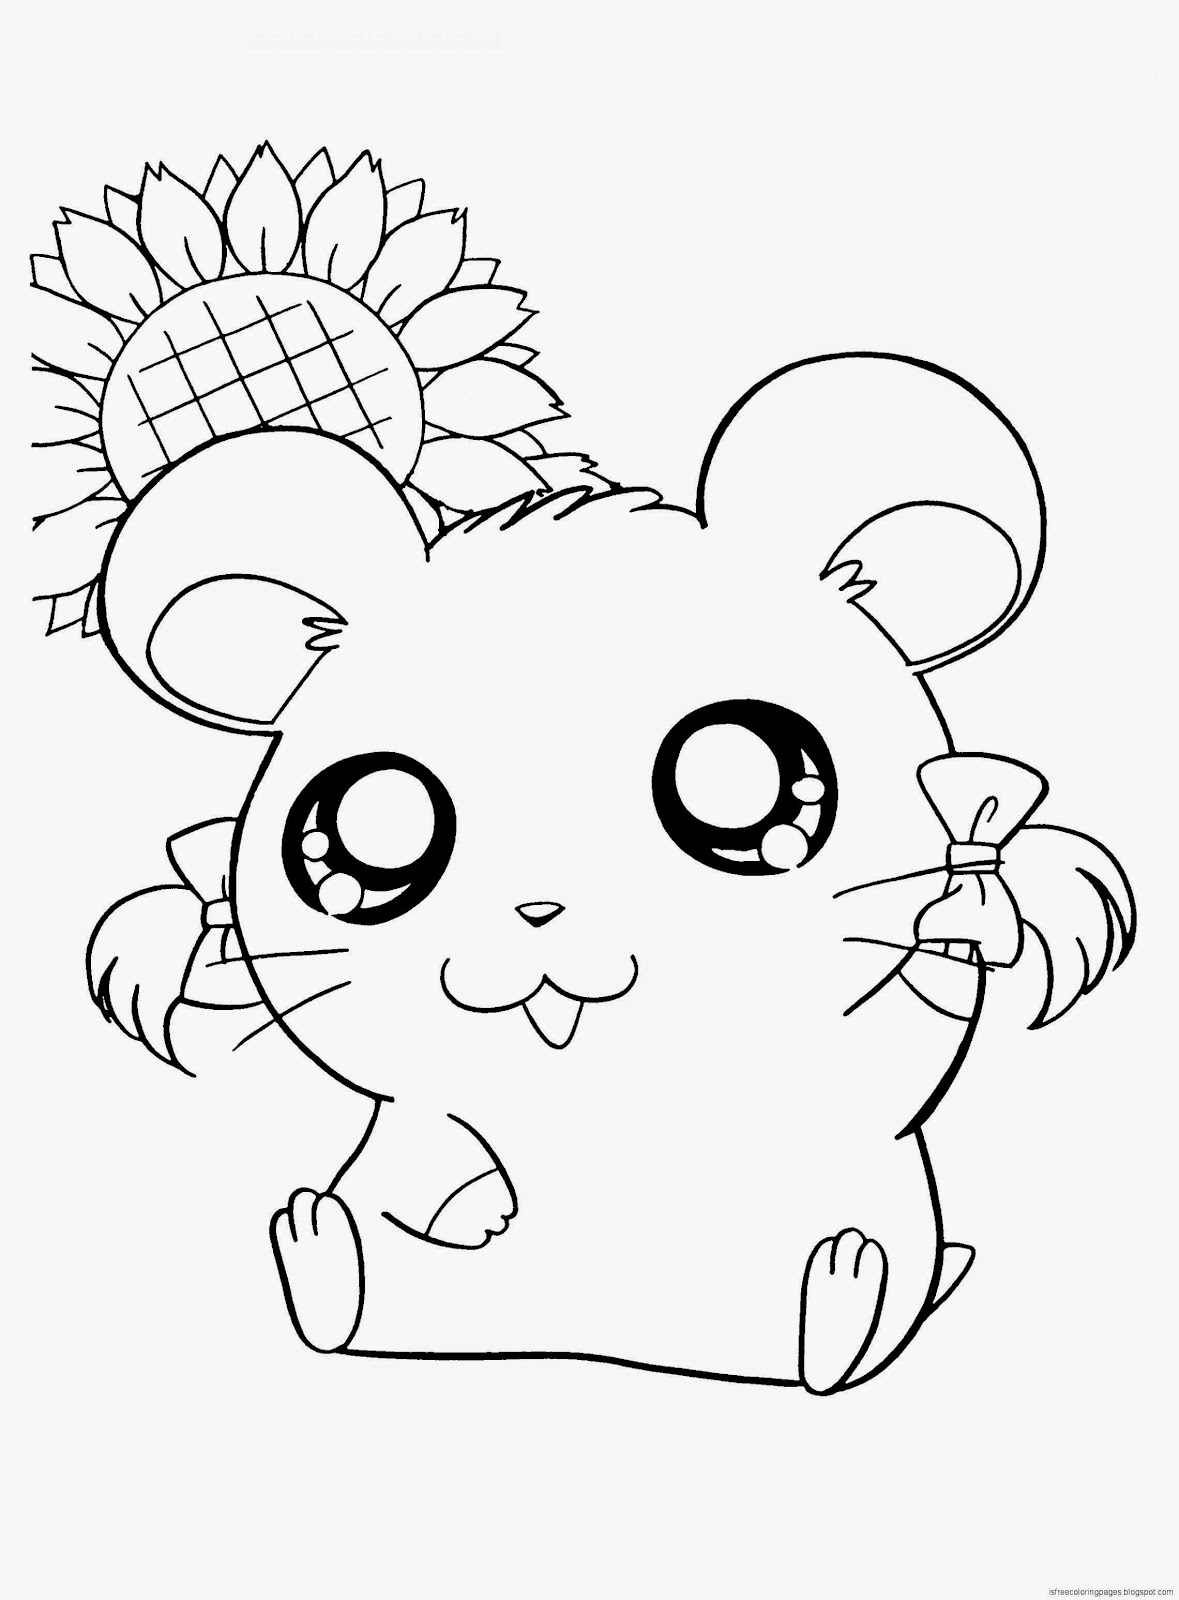 hamtaro coloring pages Hamtaro Coloring Pages | Free Coloring Pages hamtaro coloring pages